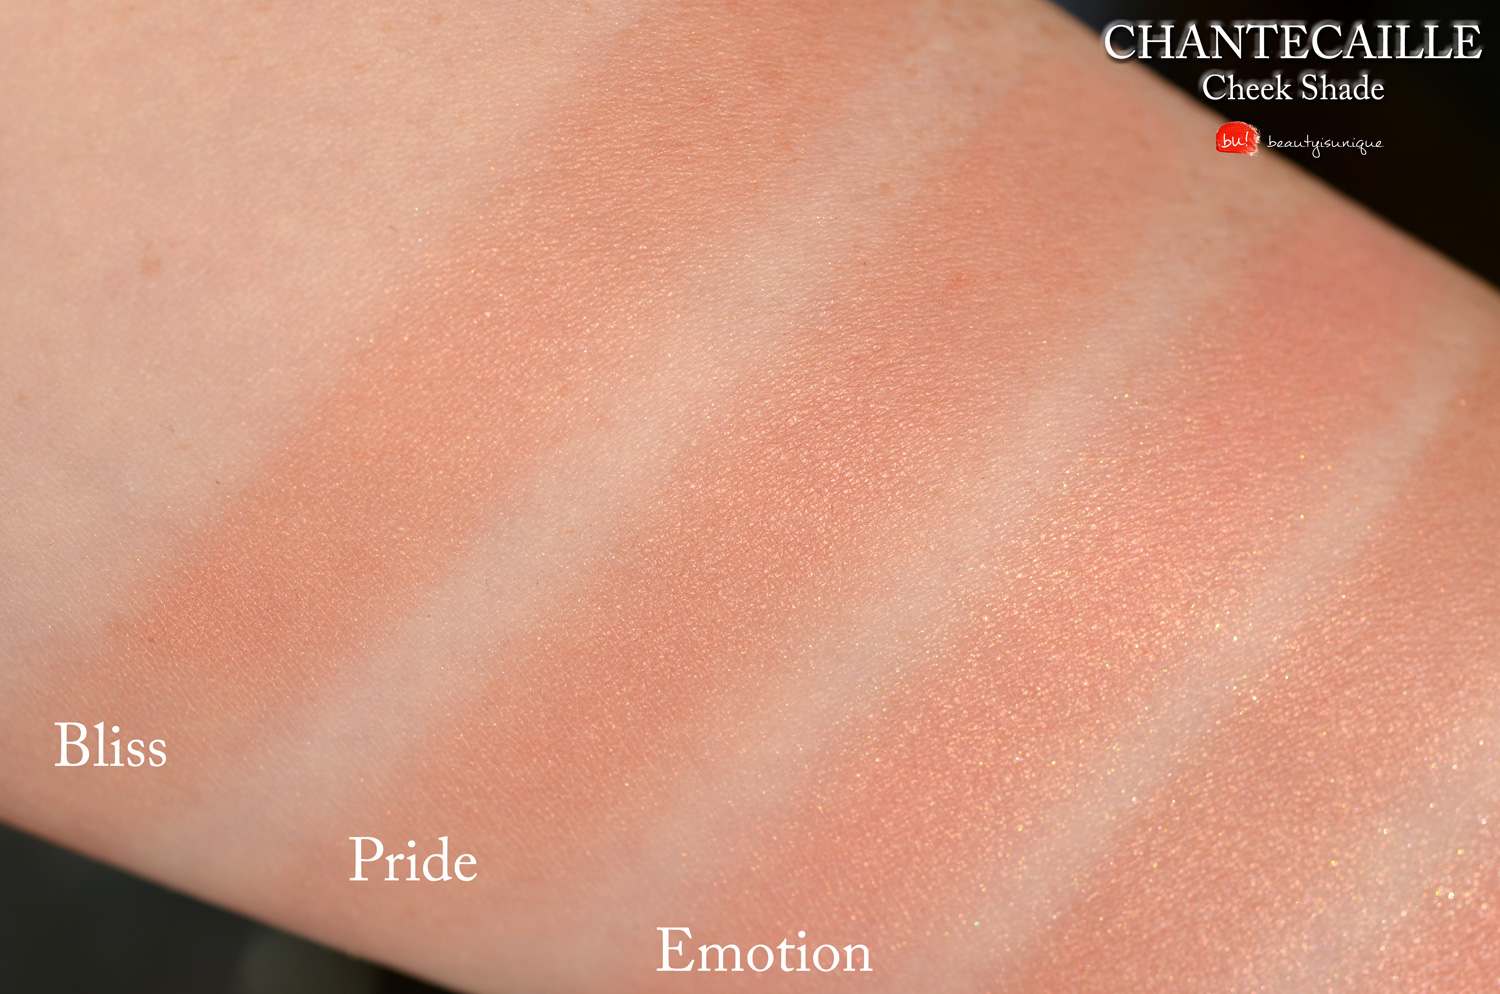 chantecaille-cheek-shade-swatches